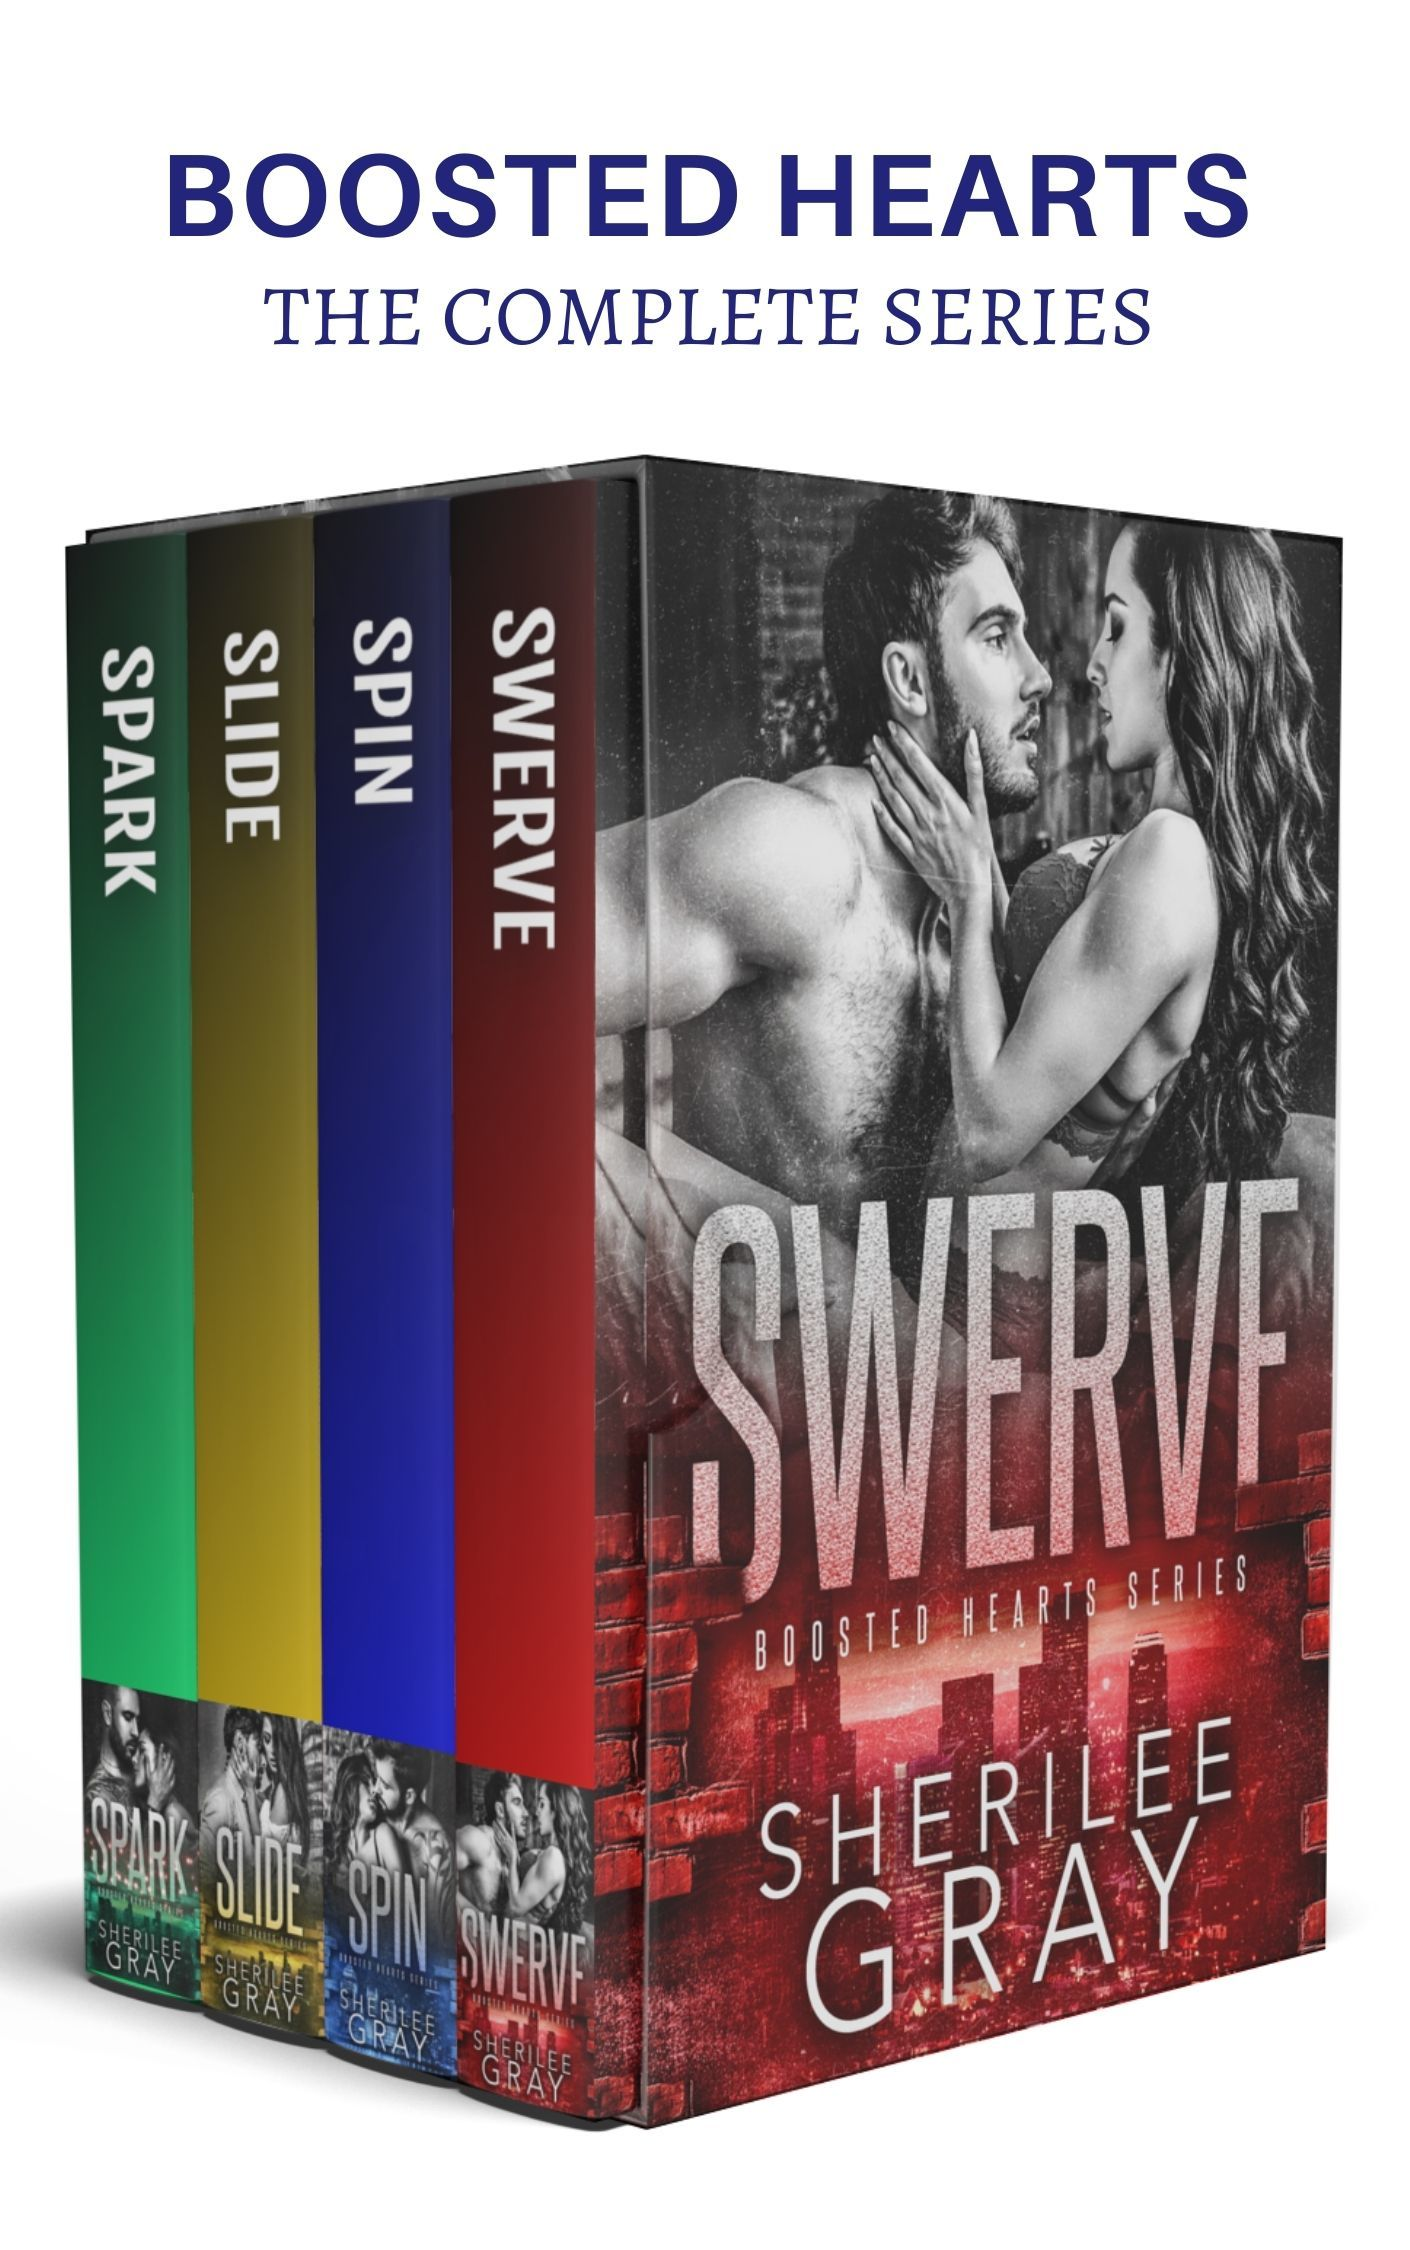 Boosted Hearts Boxed Set: The Complete Series